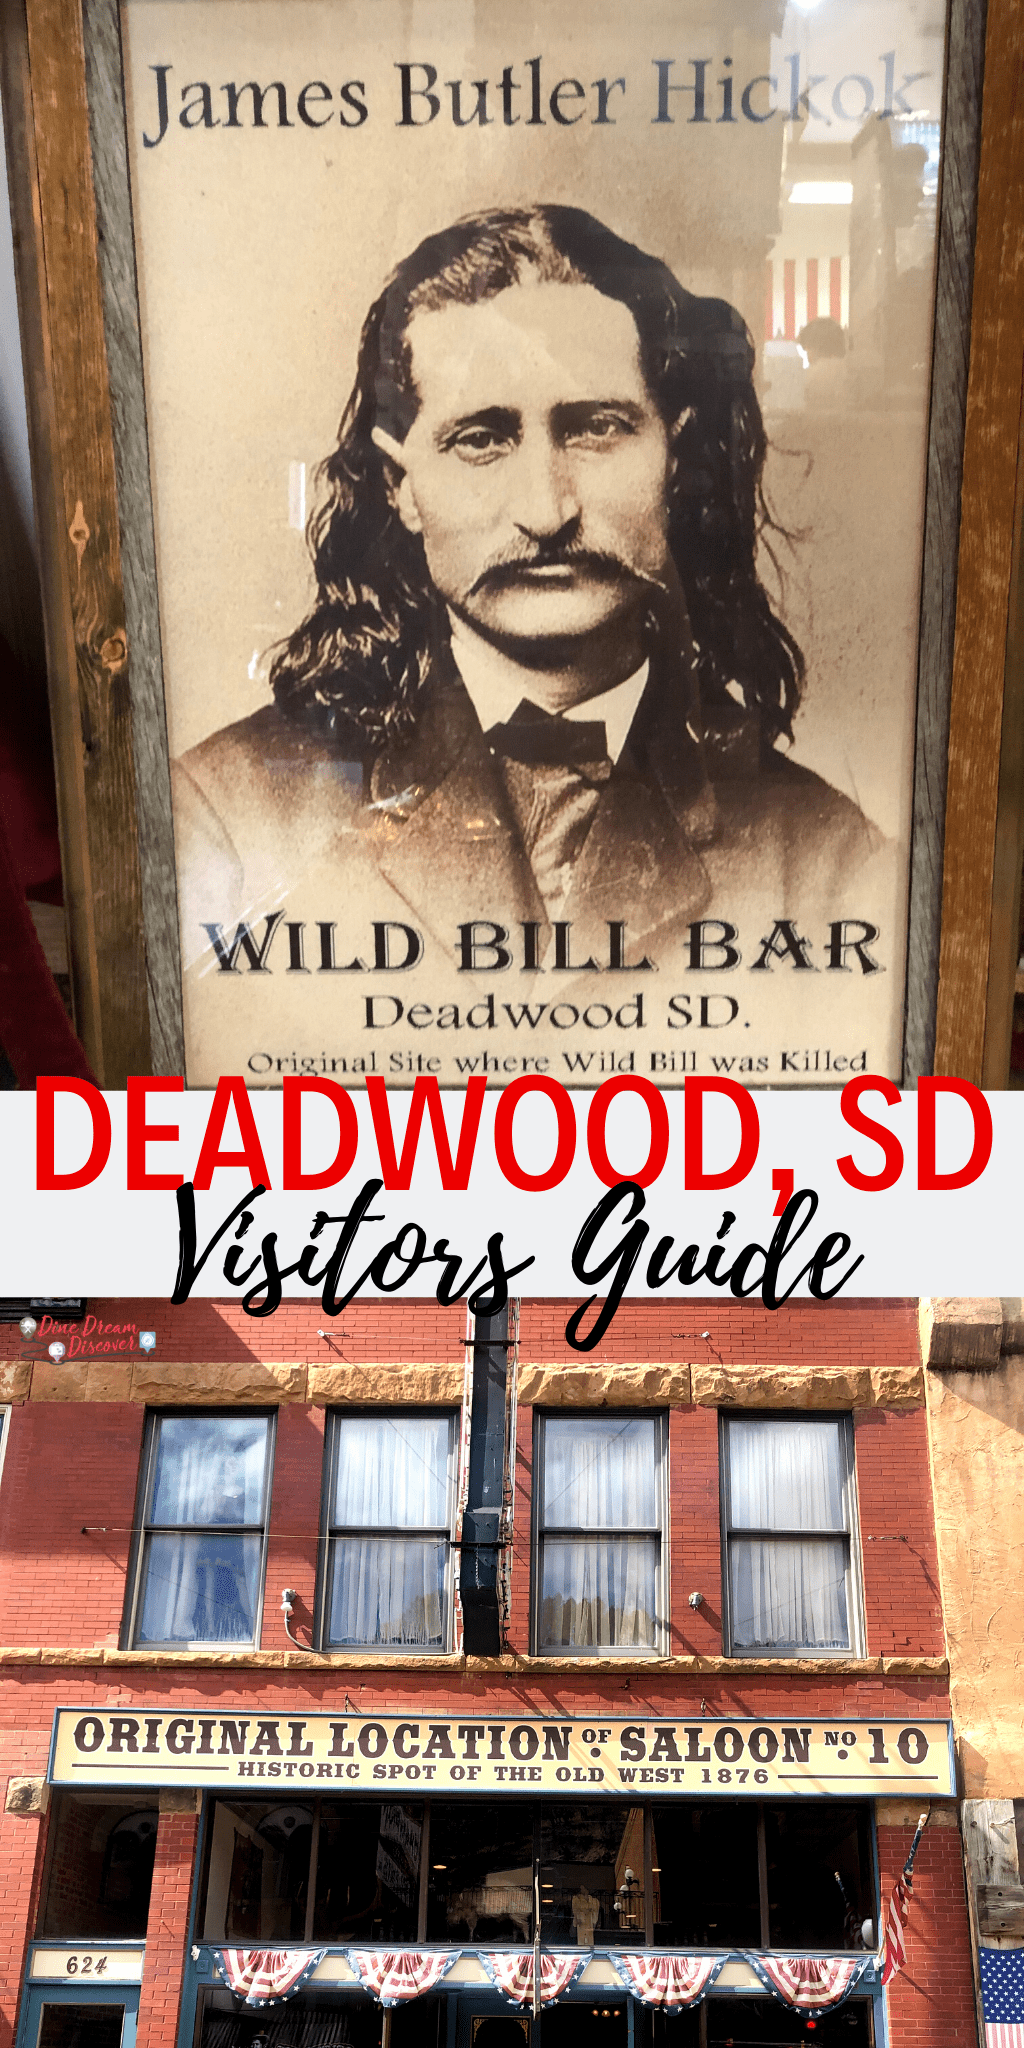 Deadwood, South Dakota, is one of the rare frontier towns that sprung up from nothing. It has survived through to the present day! Find out more about the area in this post.